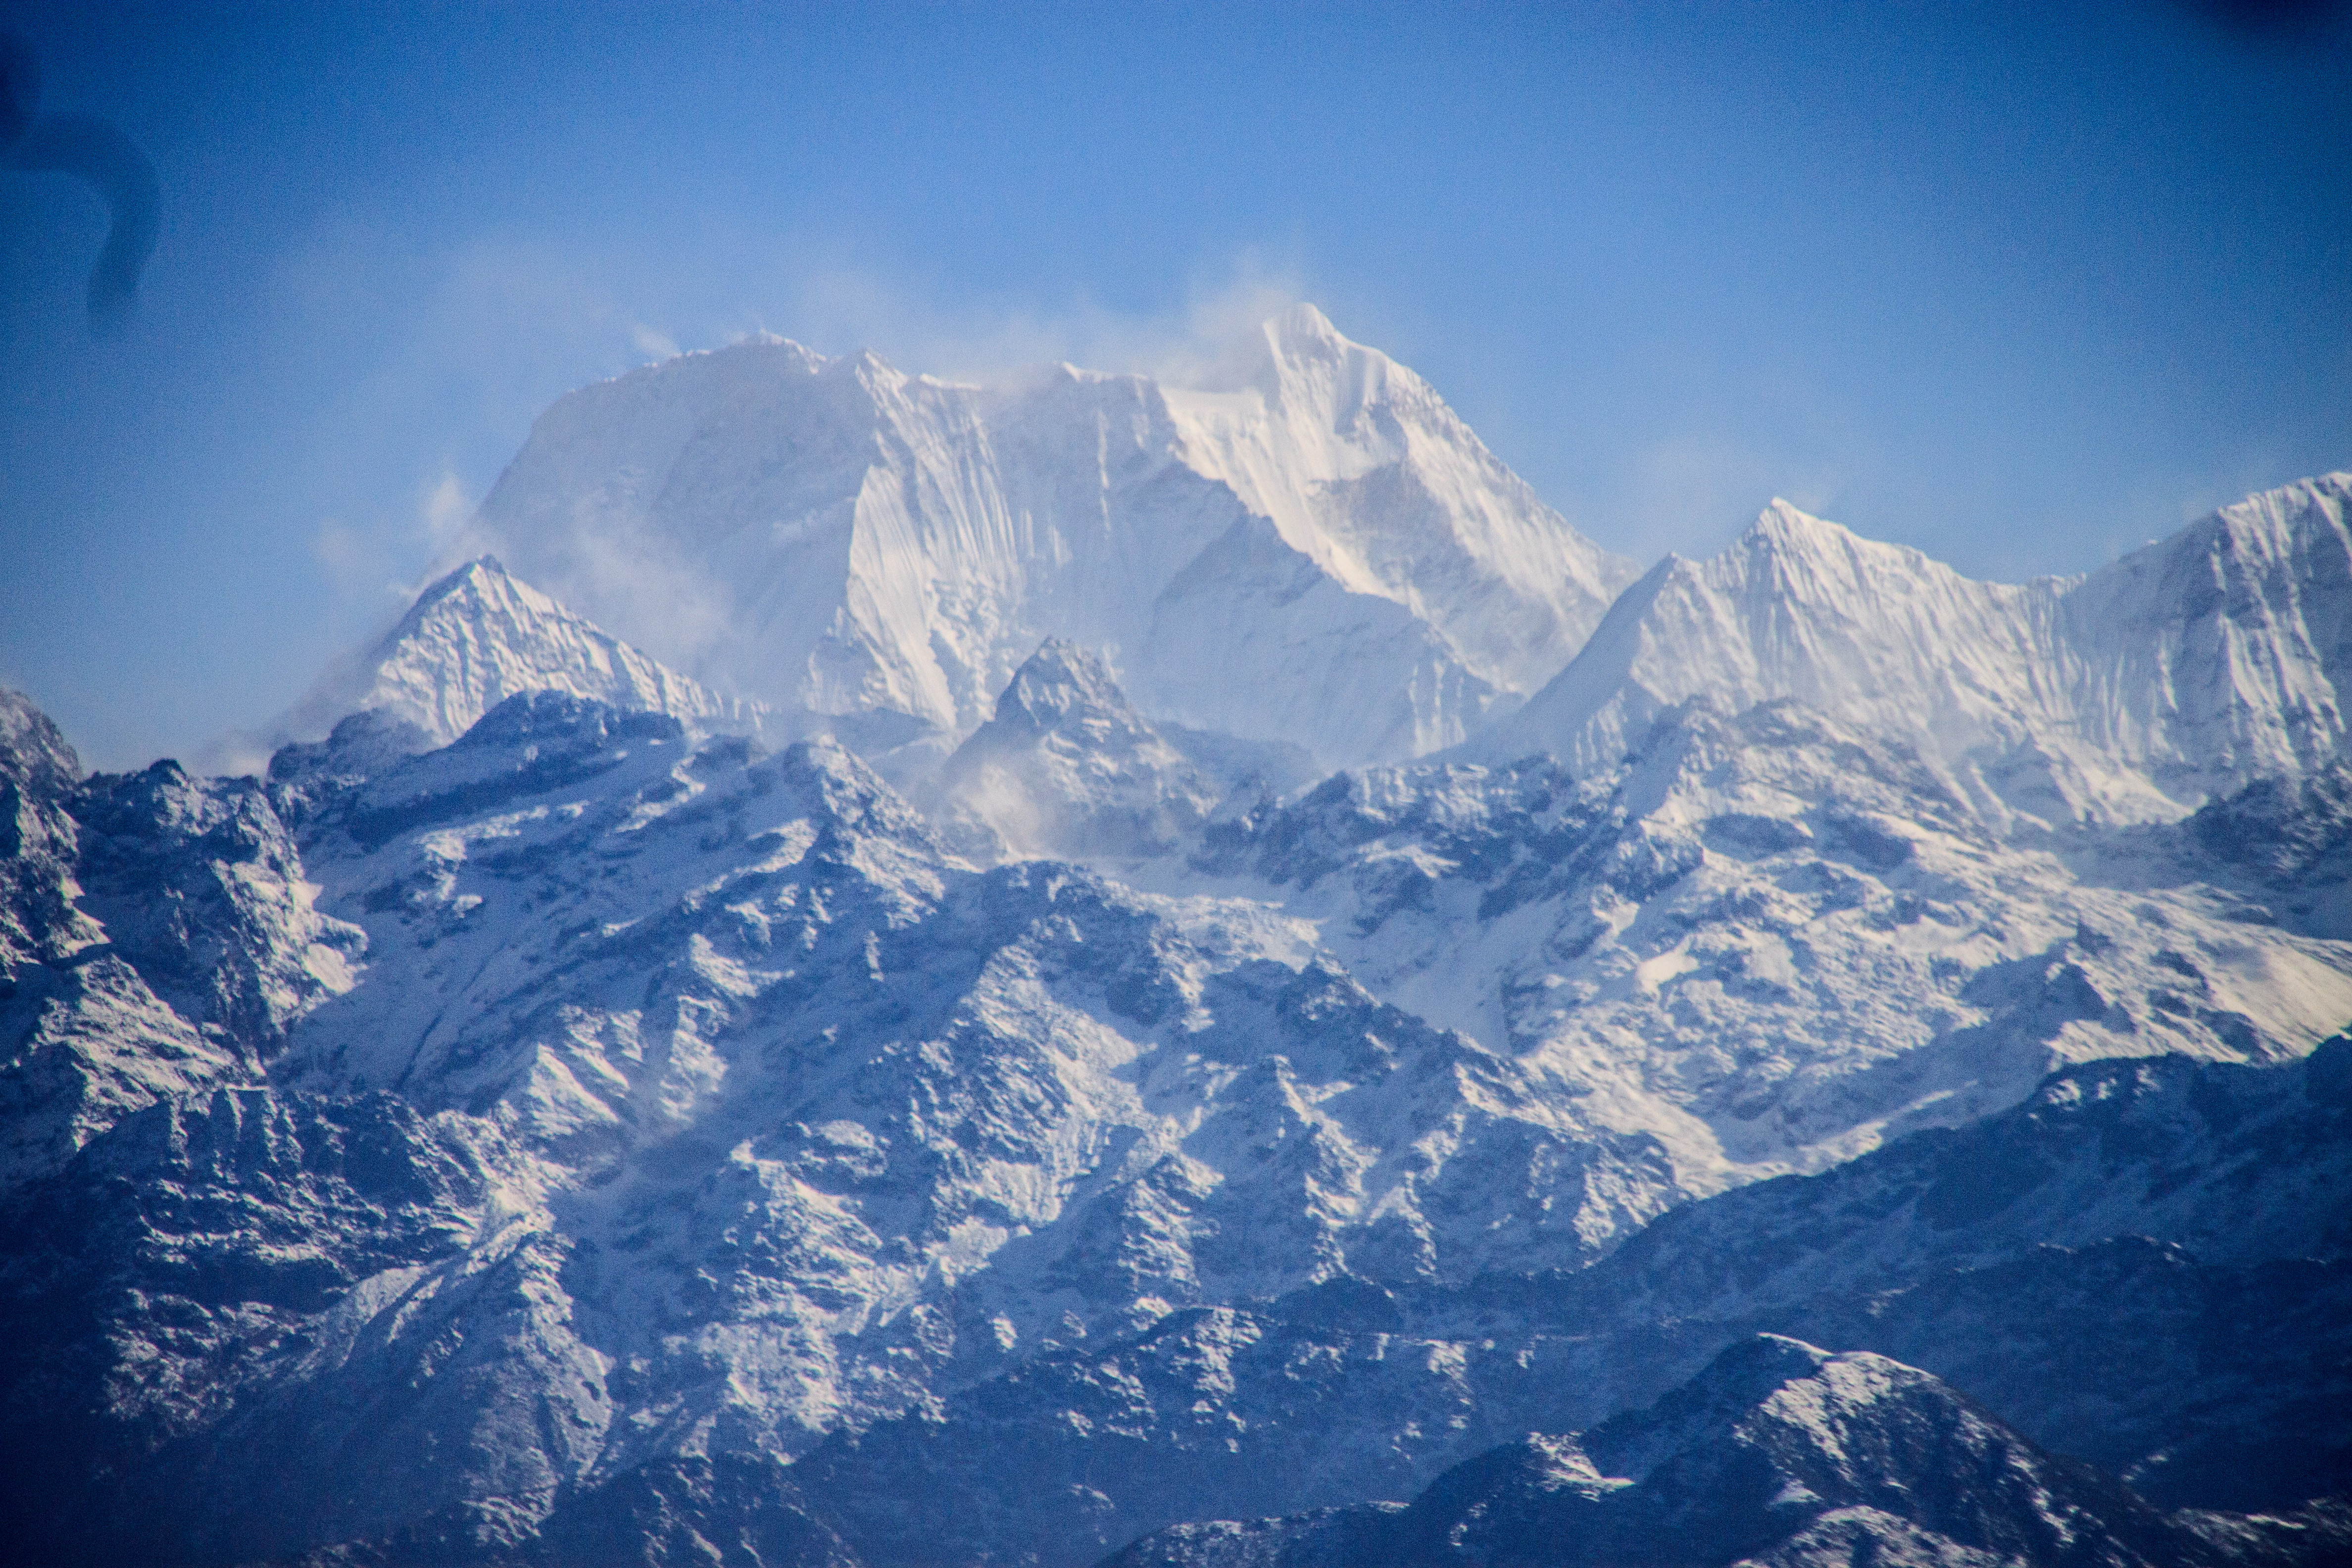 I think this may be Annapurna but I'm not sure! Taken from the plan as we approached Lukla.